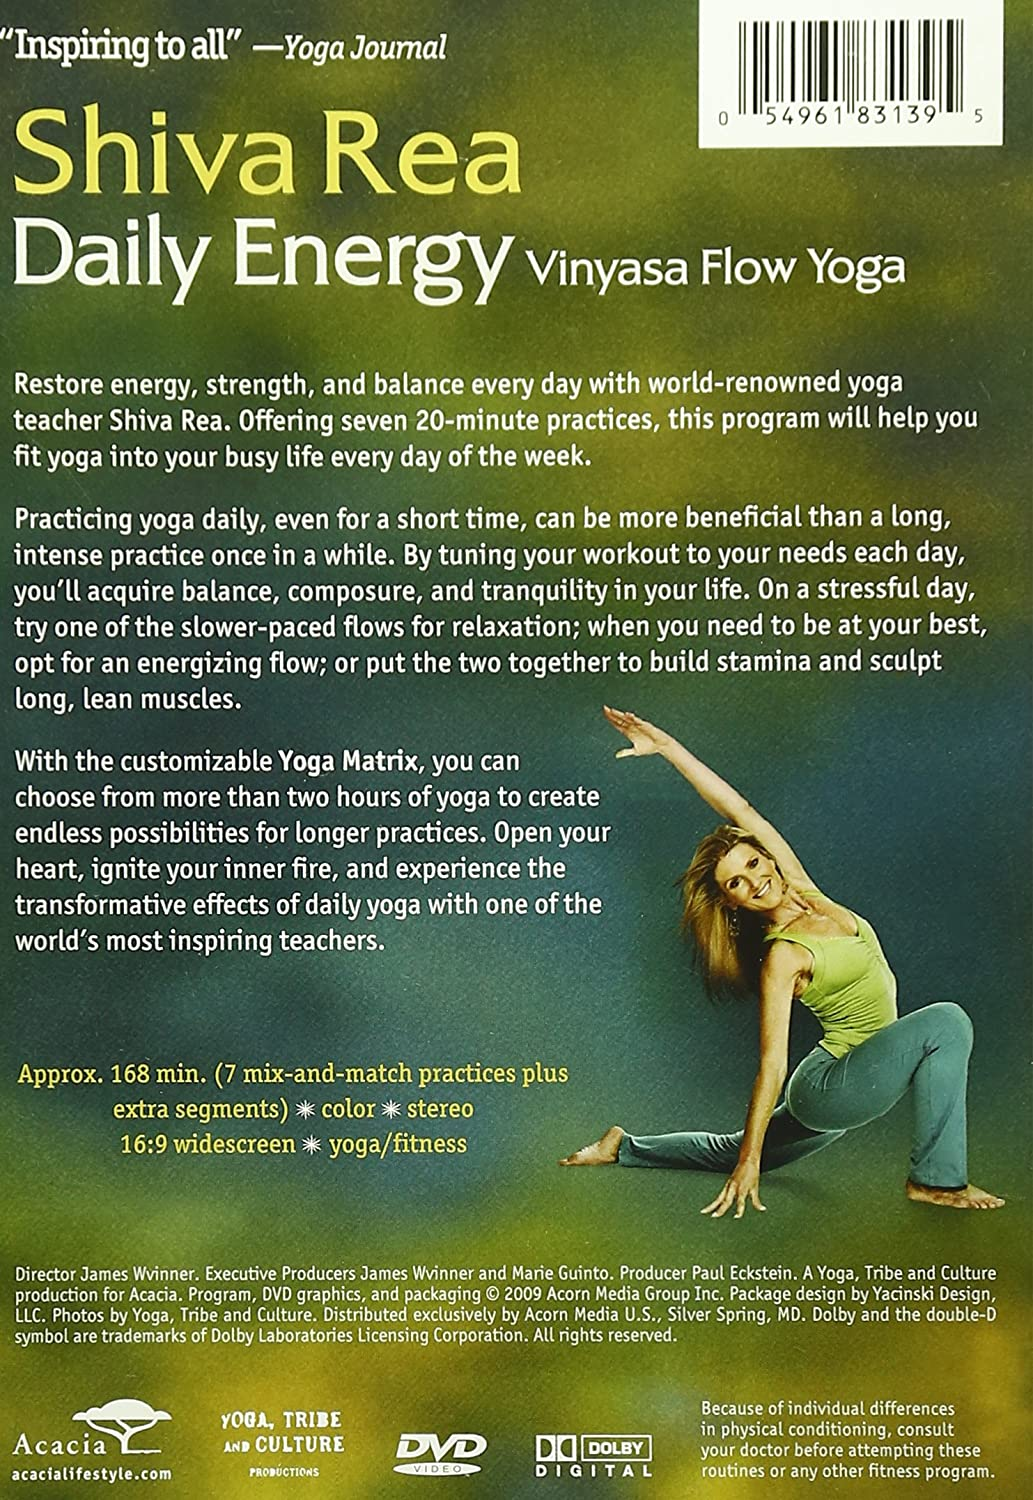 shiva rea daily energy vinyasa flow yoga